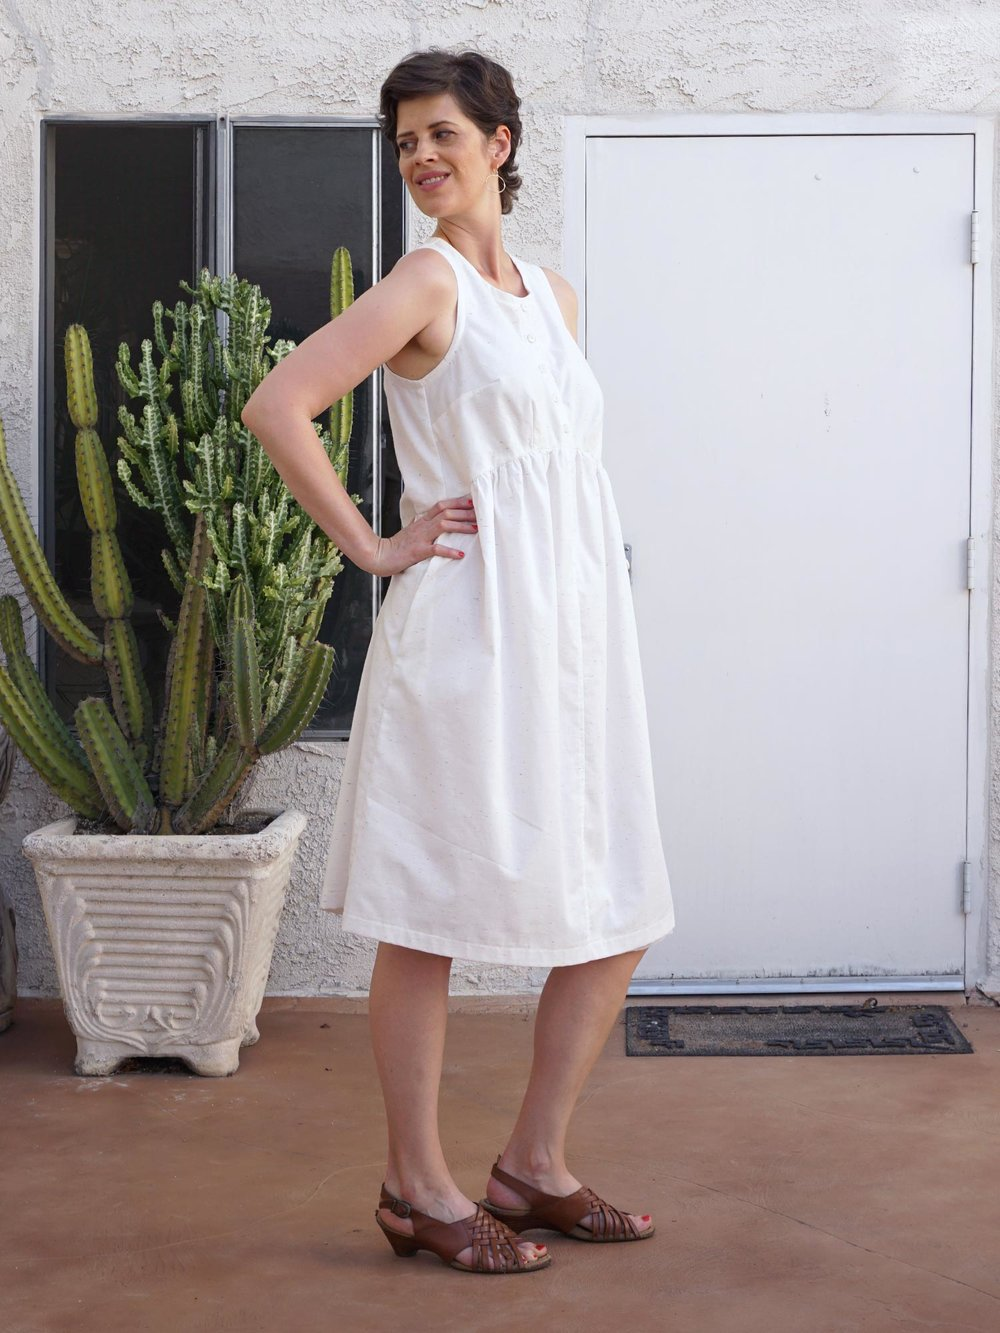 DIY White Summer Lisa Dress | Sew DIY